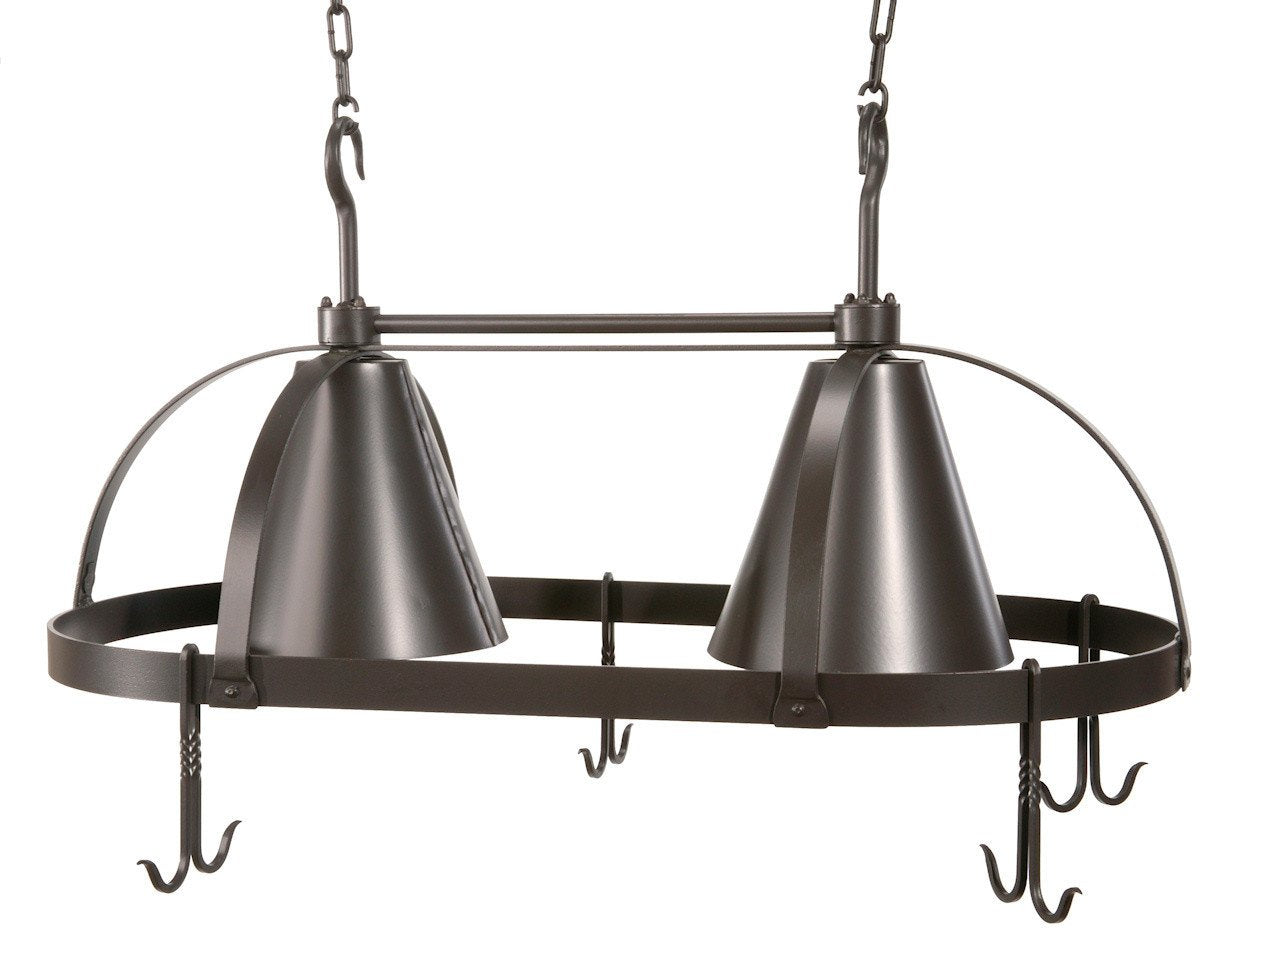 Stone County Dutch Lighted Pot Rack Oval